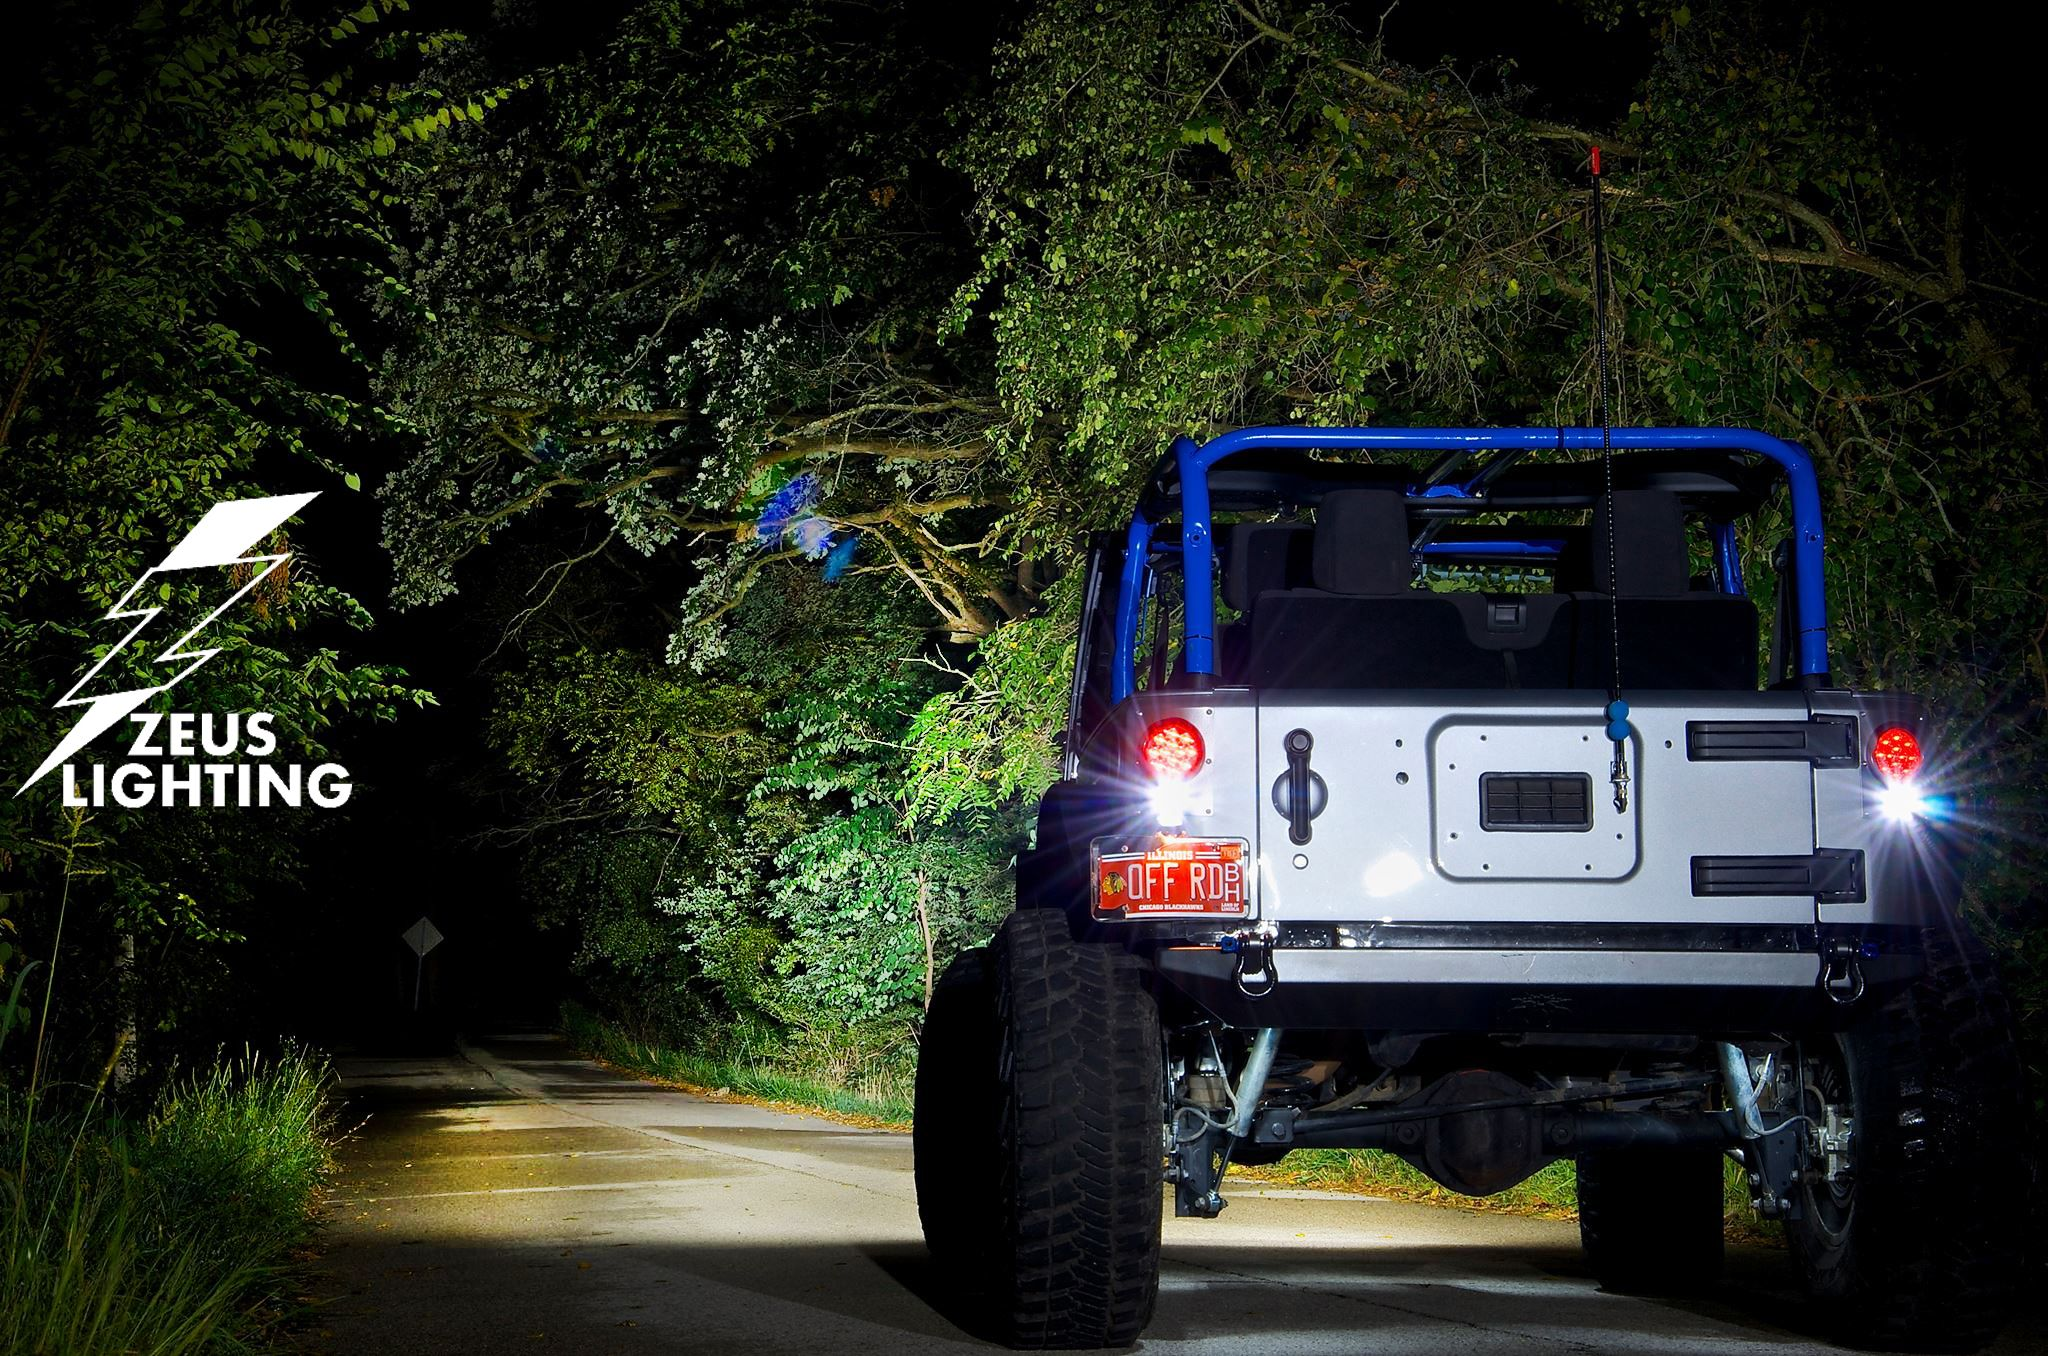 Zeus Offroad Lighting Only Available From Olympus Offroad Olympusoffroad Jeep Wrangler Led Lightbar Ledlightbar Offroad Lighting Jeep Monster Trucks